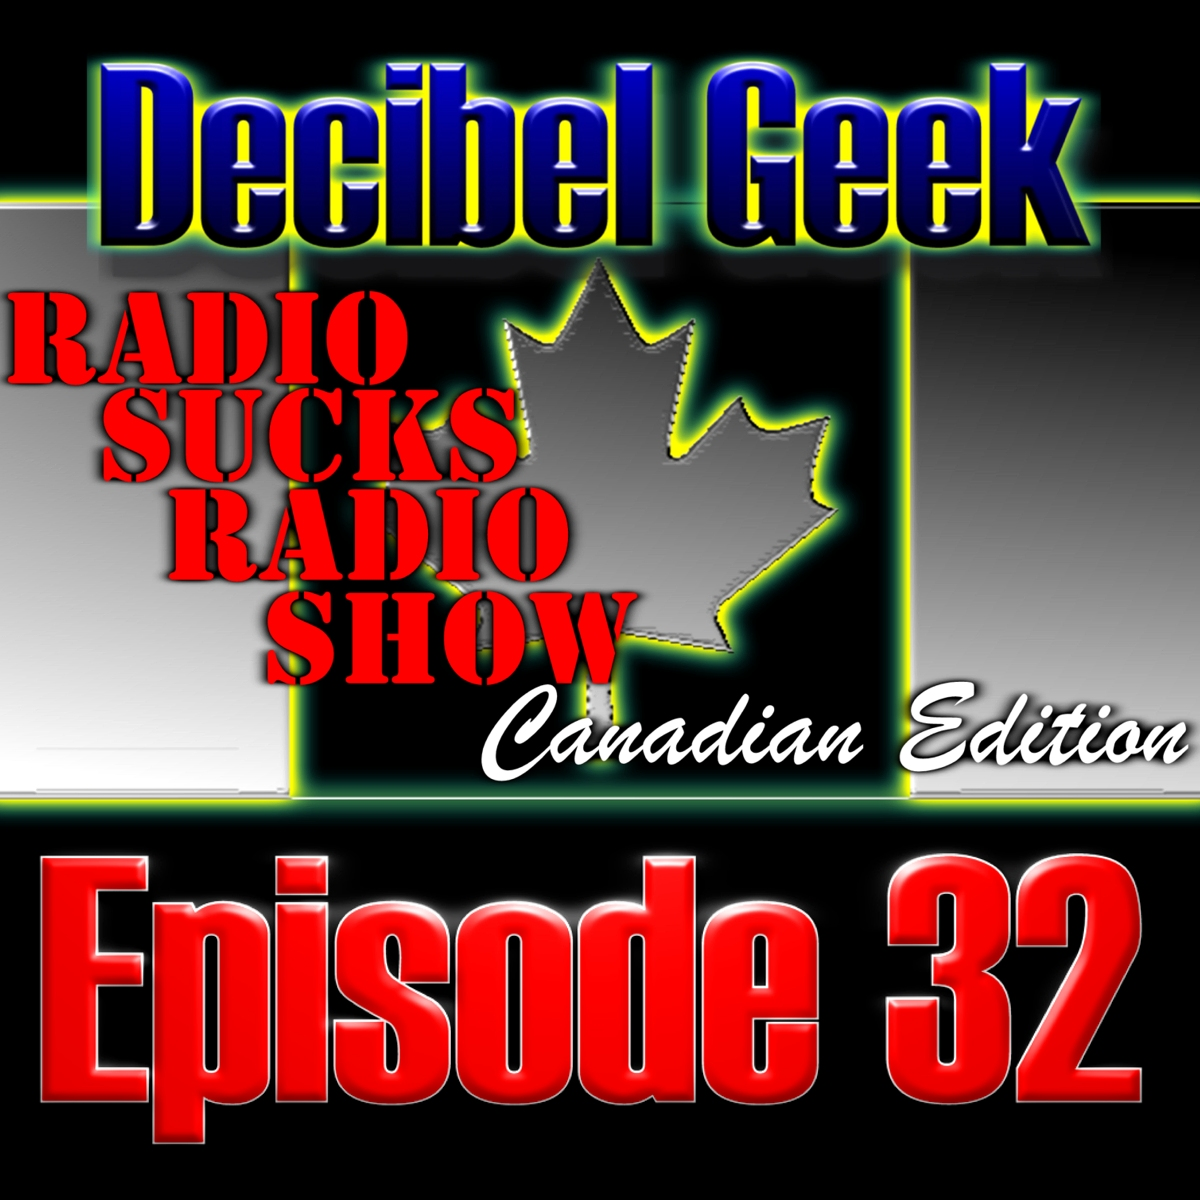 Episode 32 - Radio Sucks Radio Show: Canadian Edition